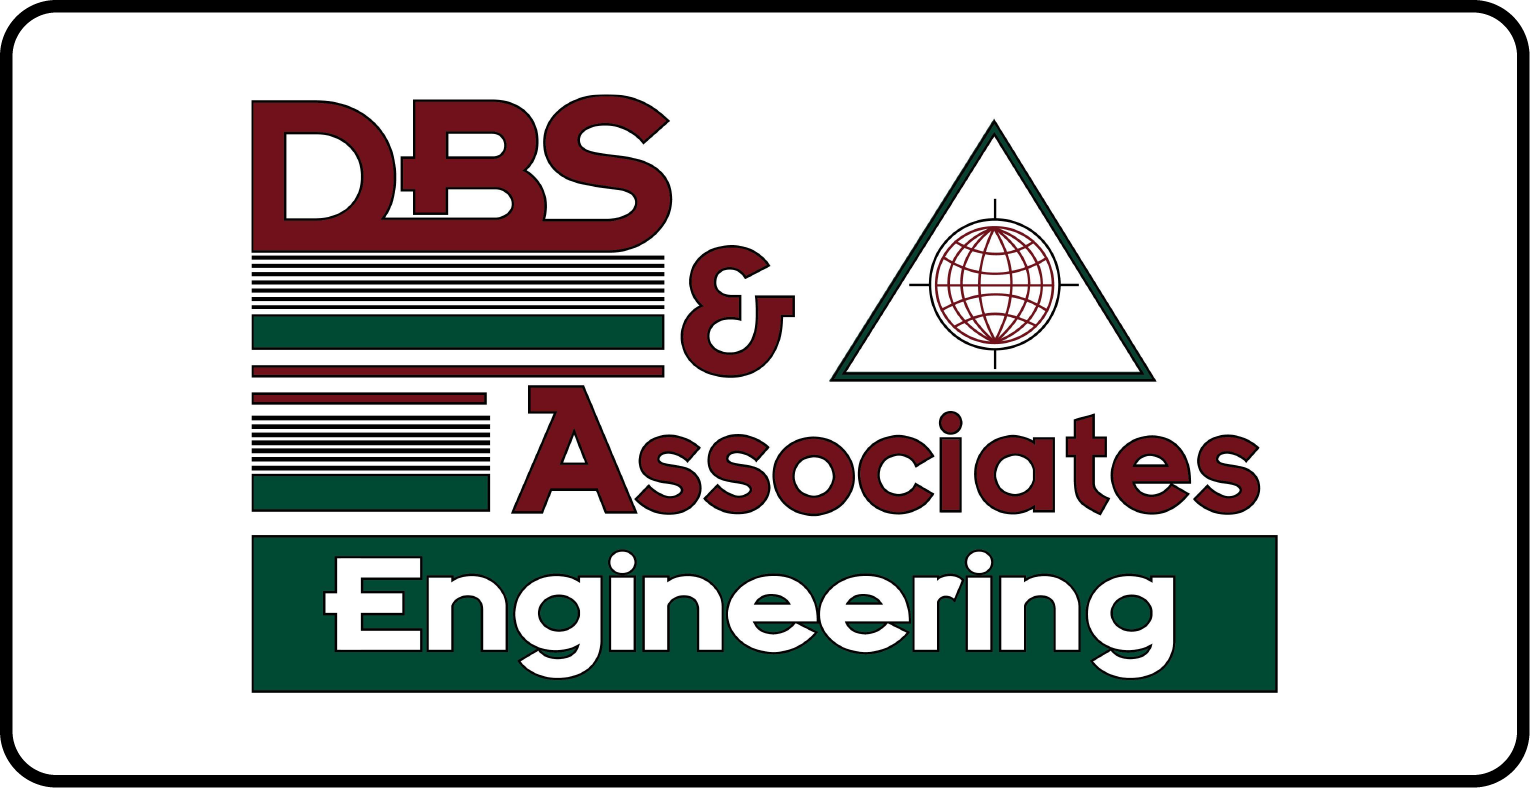 DBS Engineering